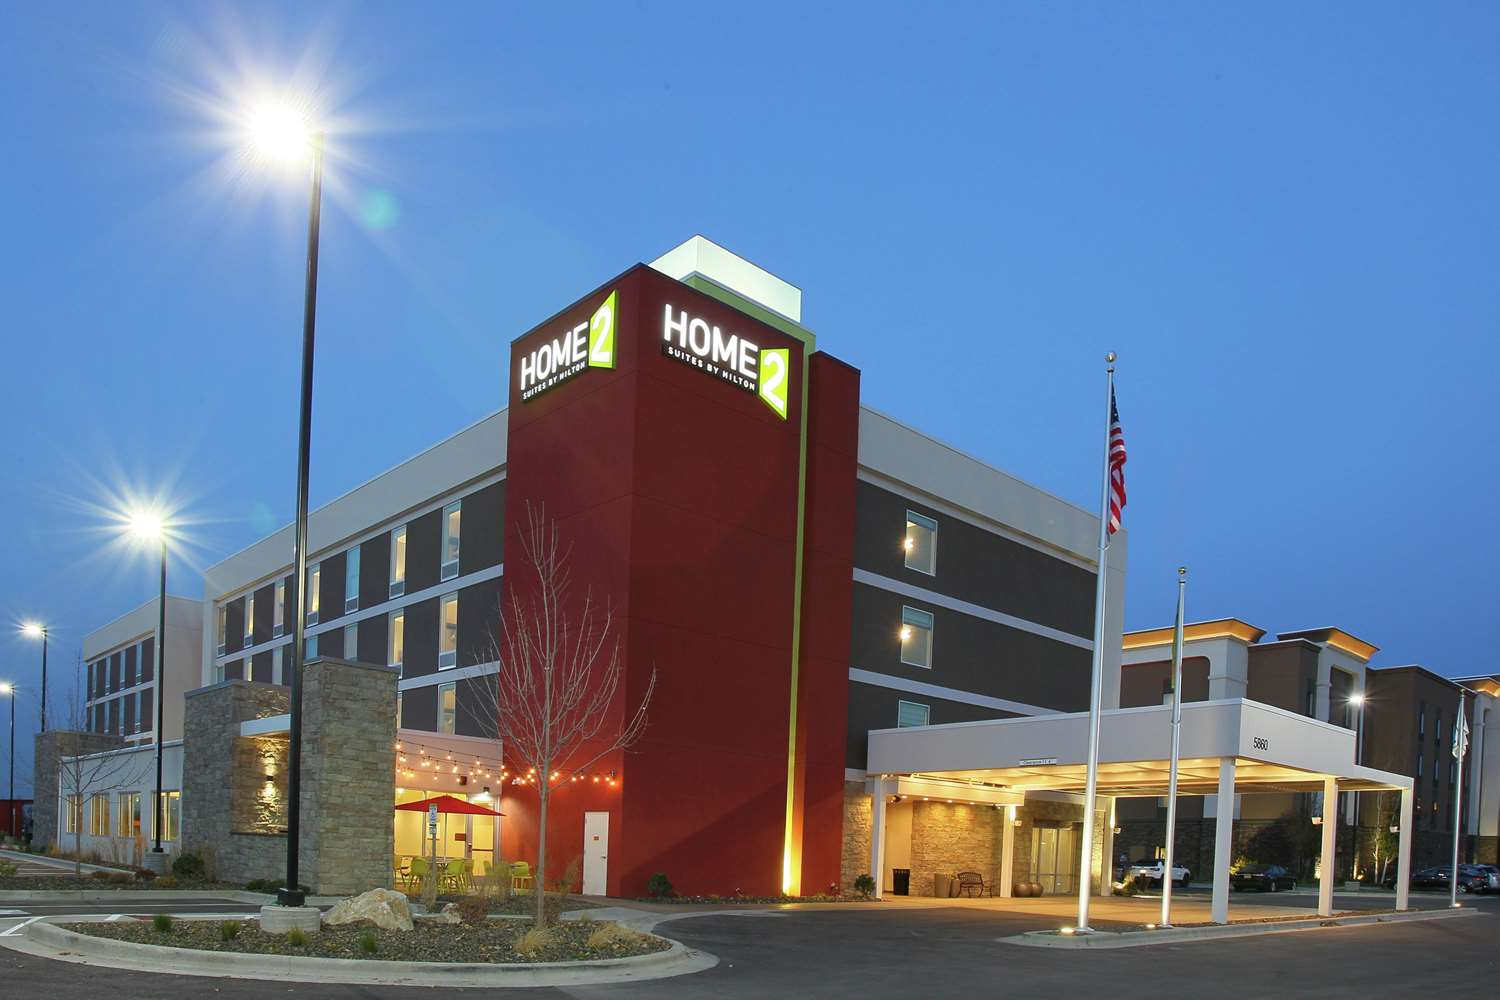 Home2 Suites by Hilton Nampa